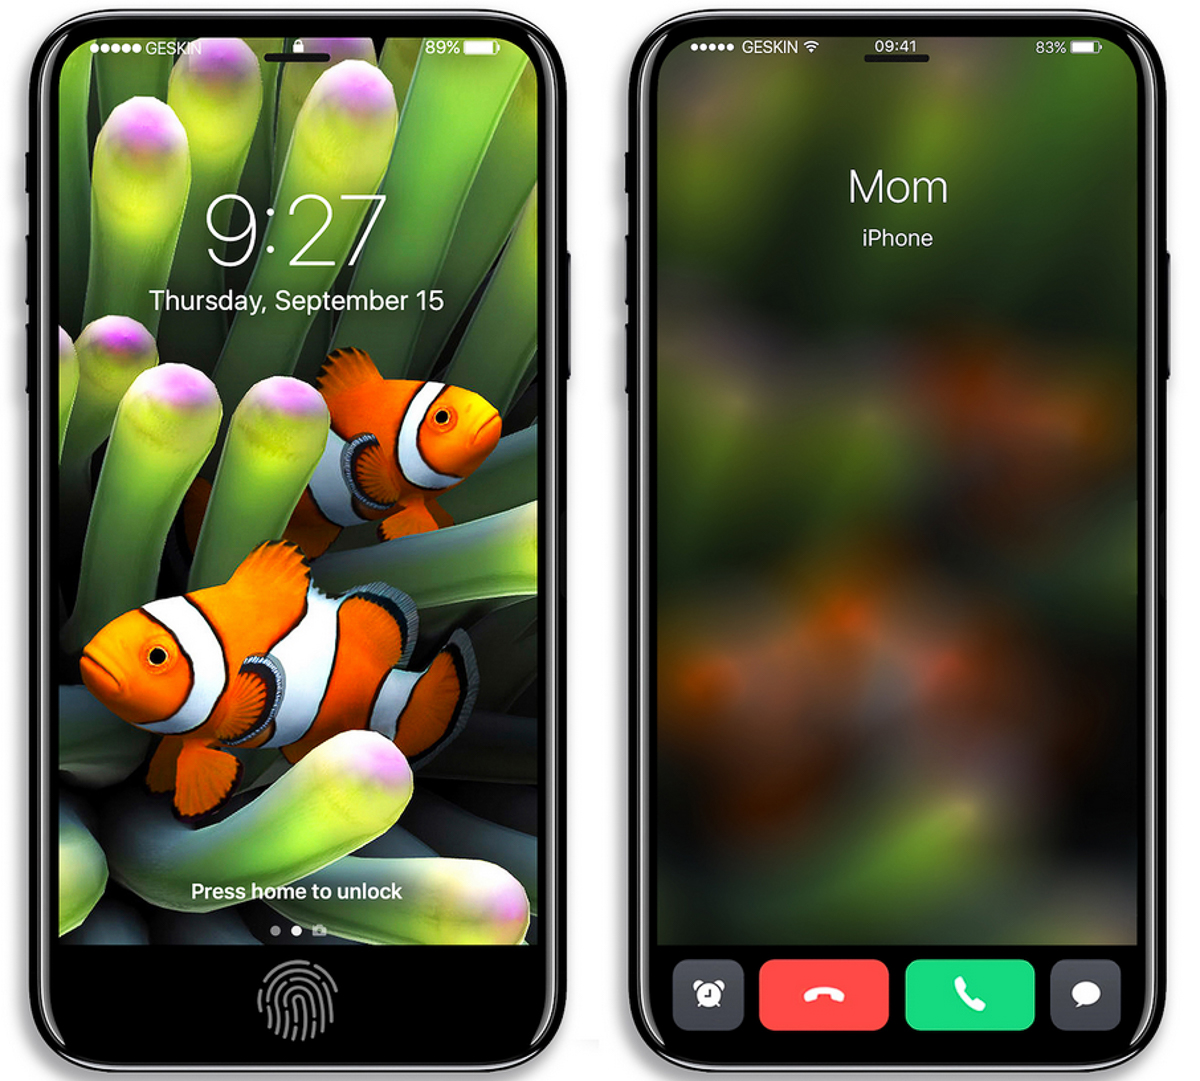 Concept-renders-of-the-Apple-iPhone-8-and-its-notification-area (1)